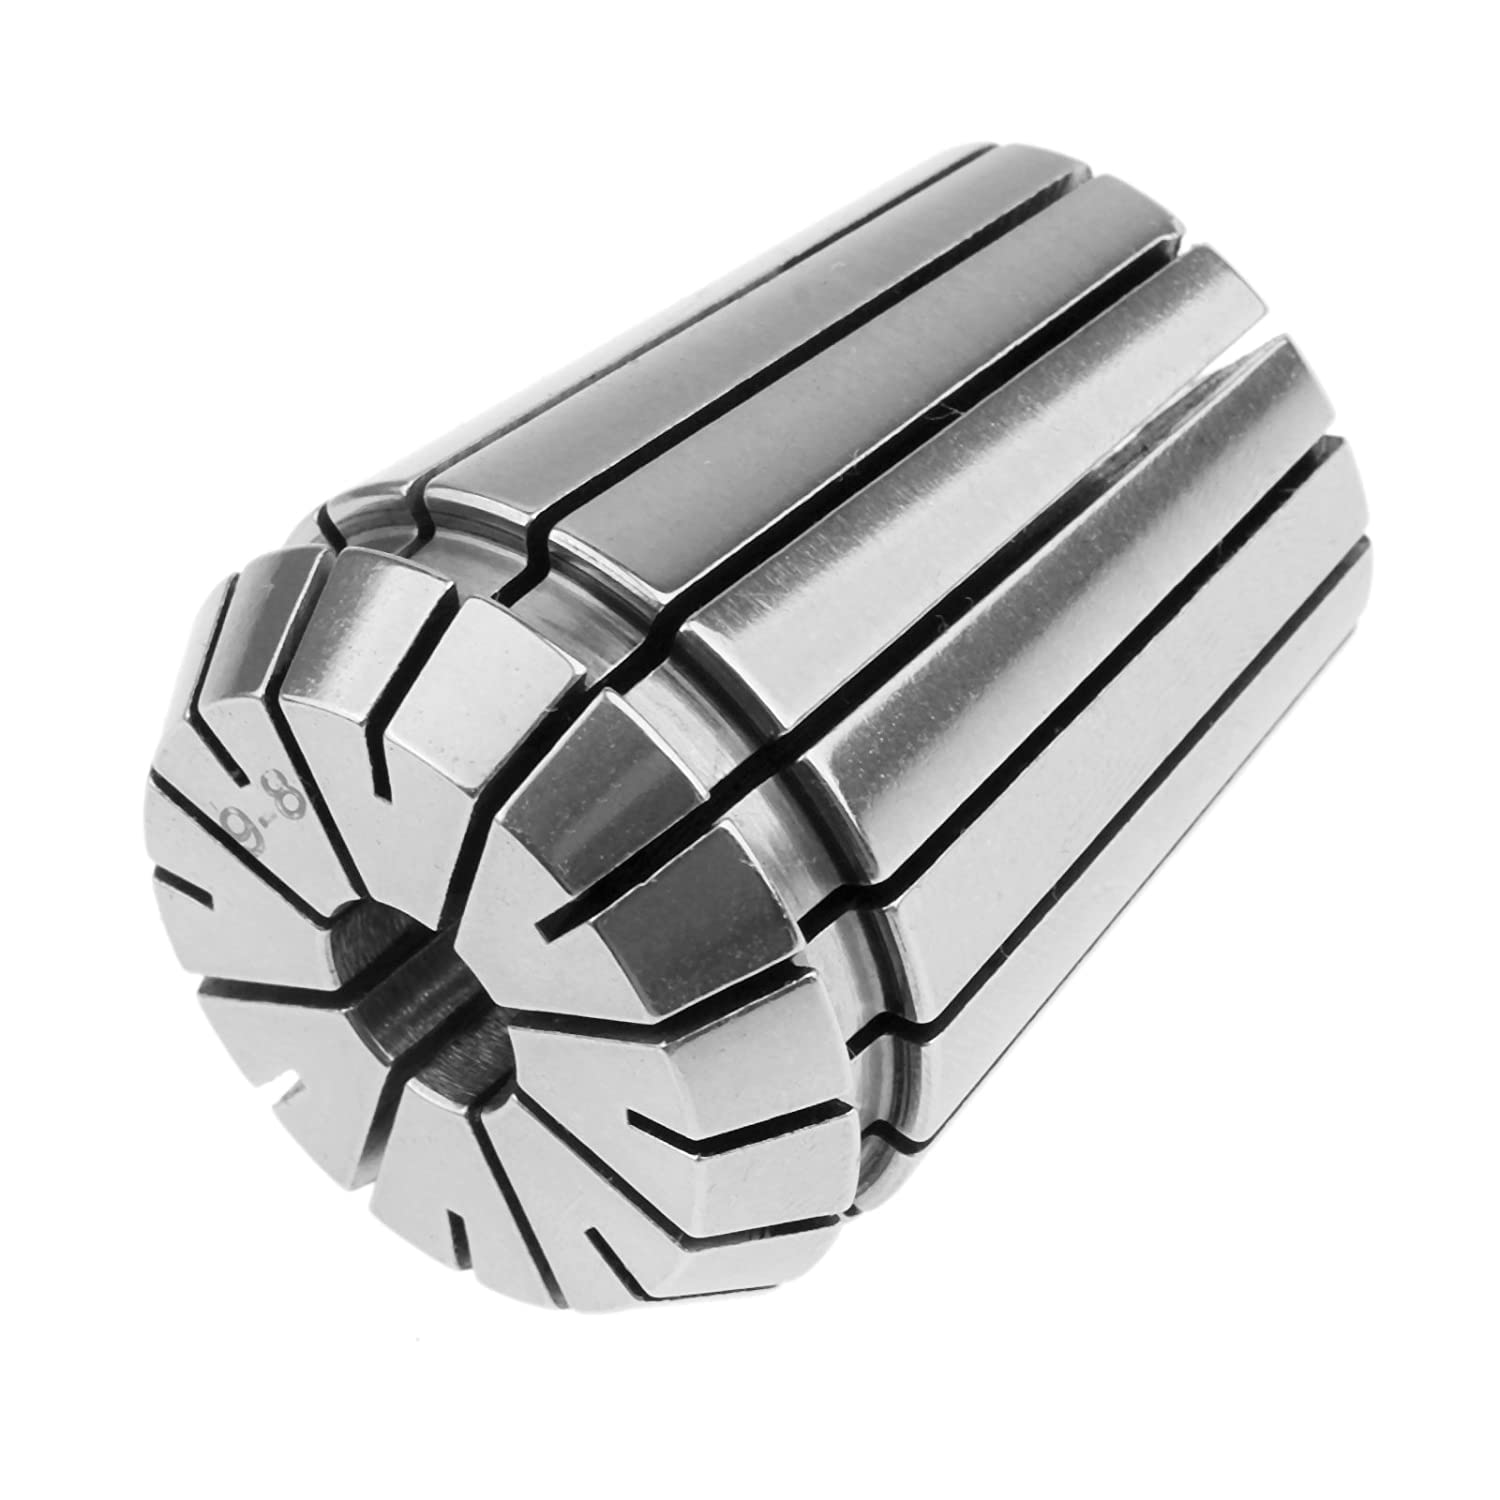 ER32 5mm Chuck Steel Collets For CNC Milling Lathe Tool and Workholding Engraving